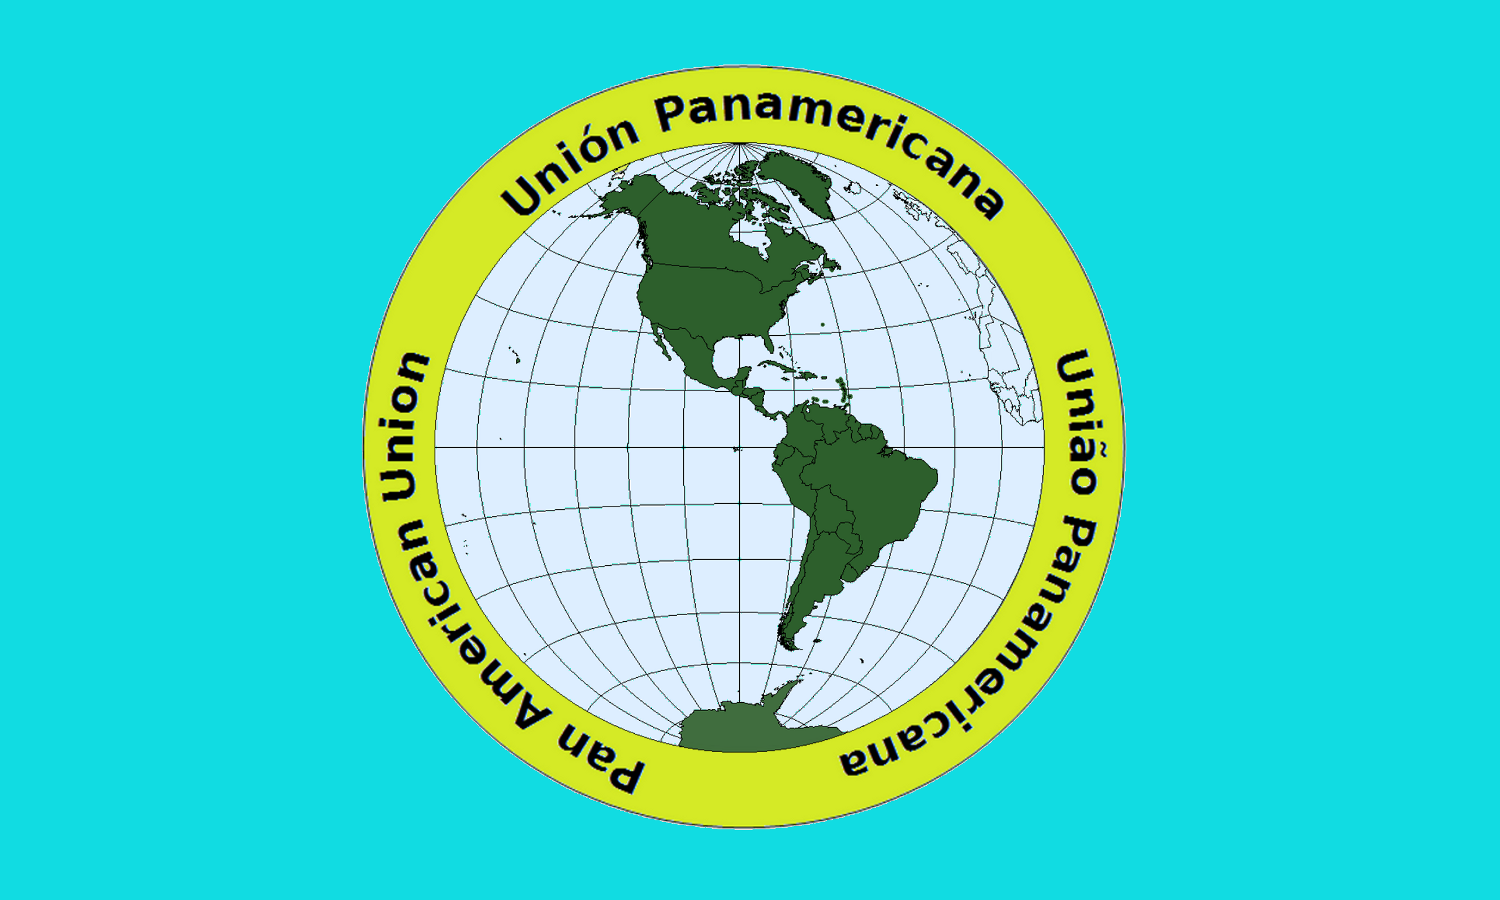 Pan-American Union (Franz's World) - Alternative History